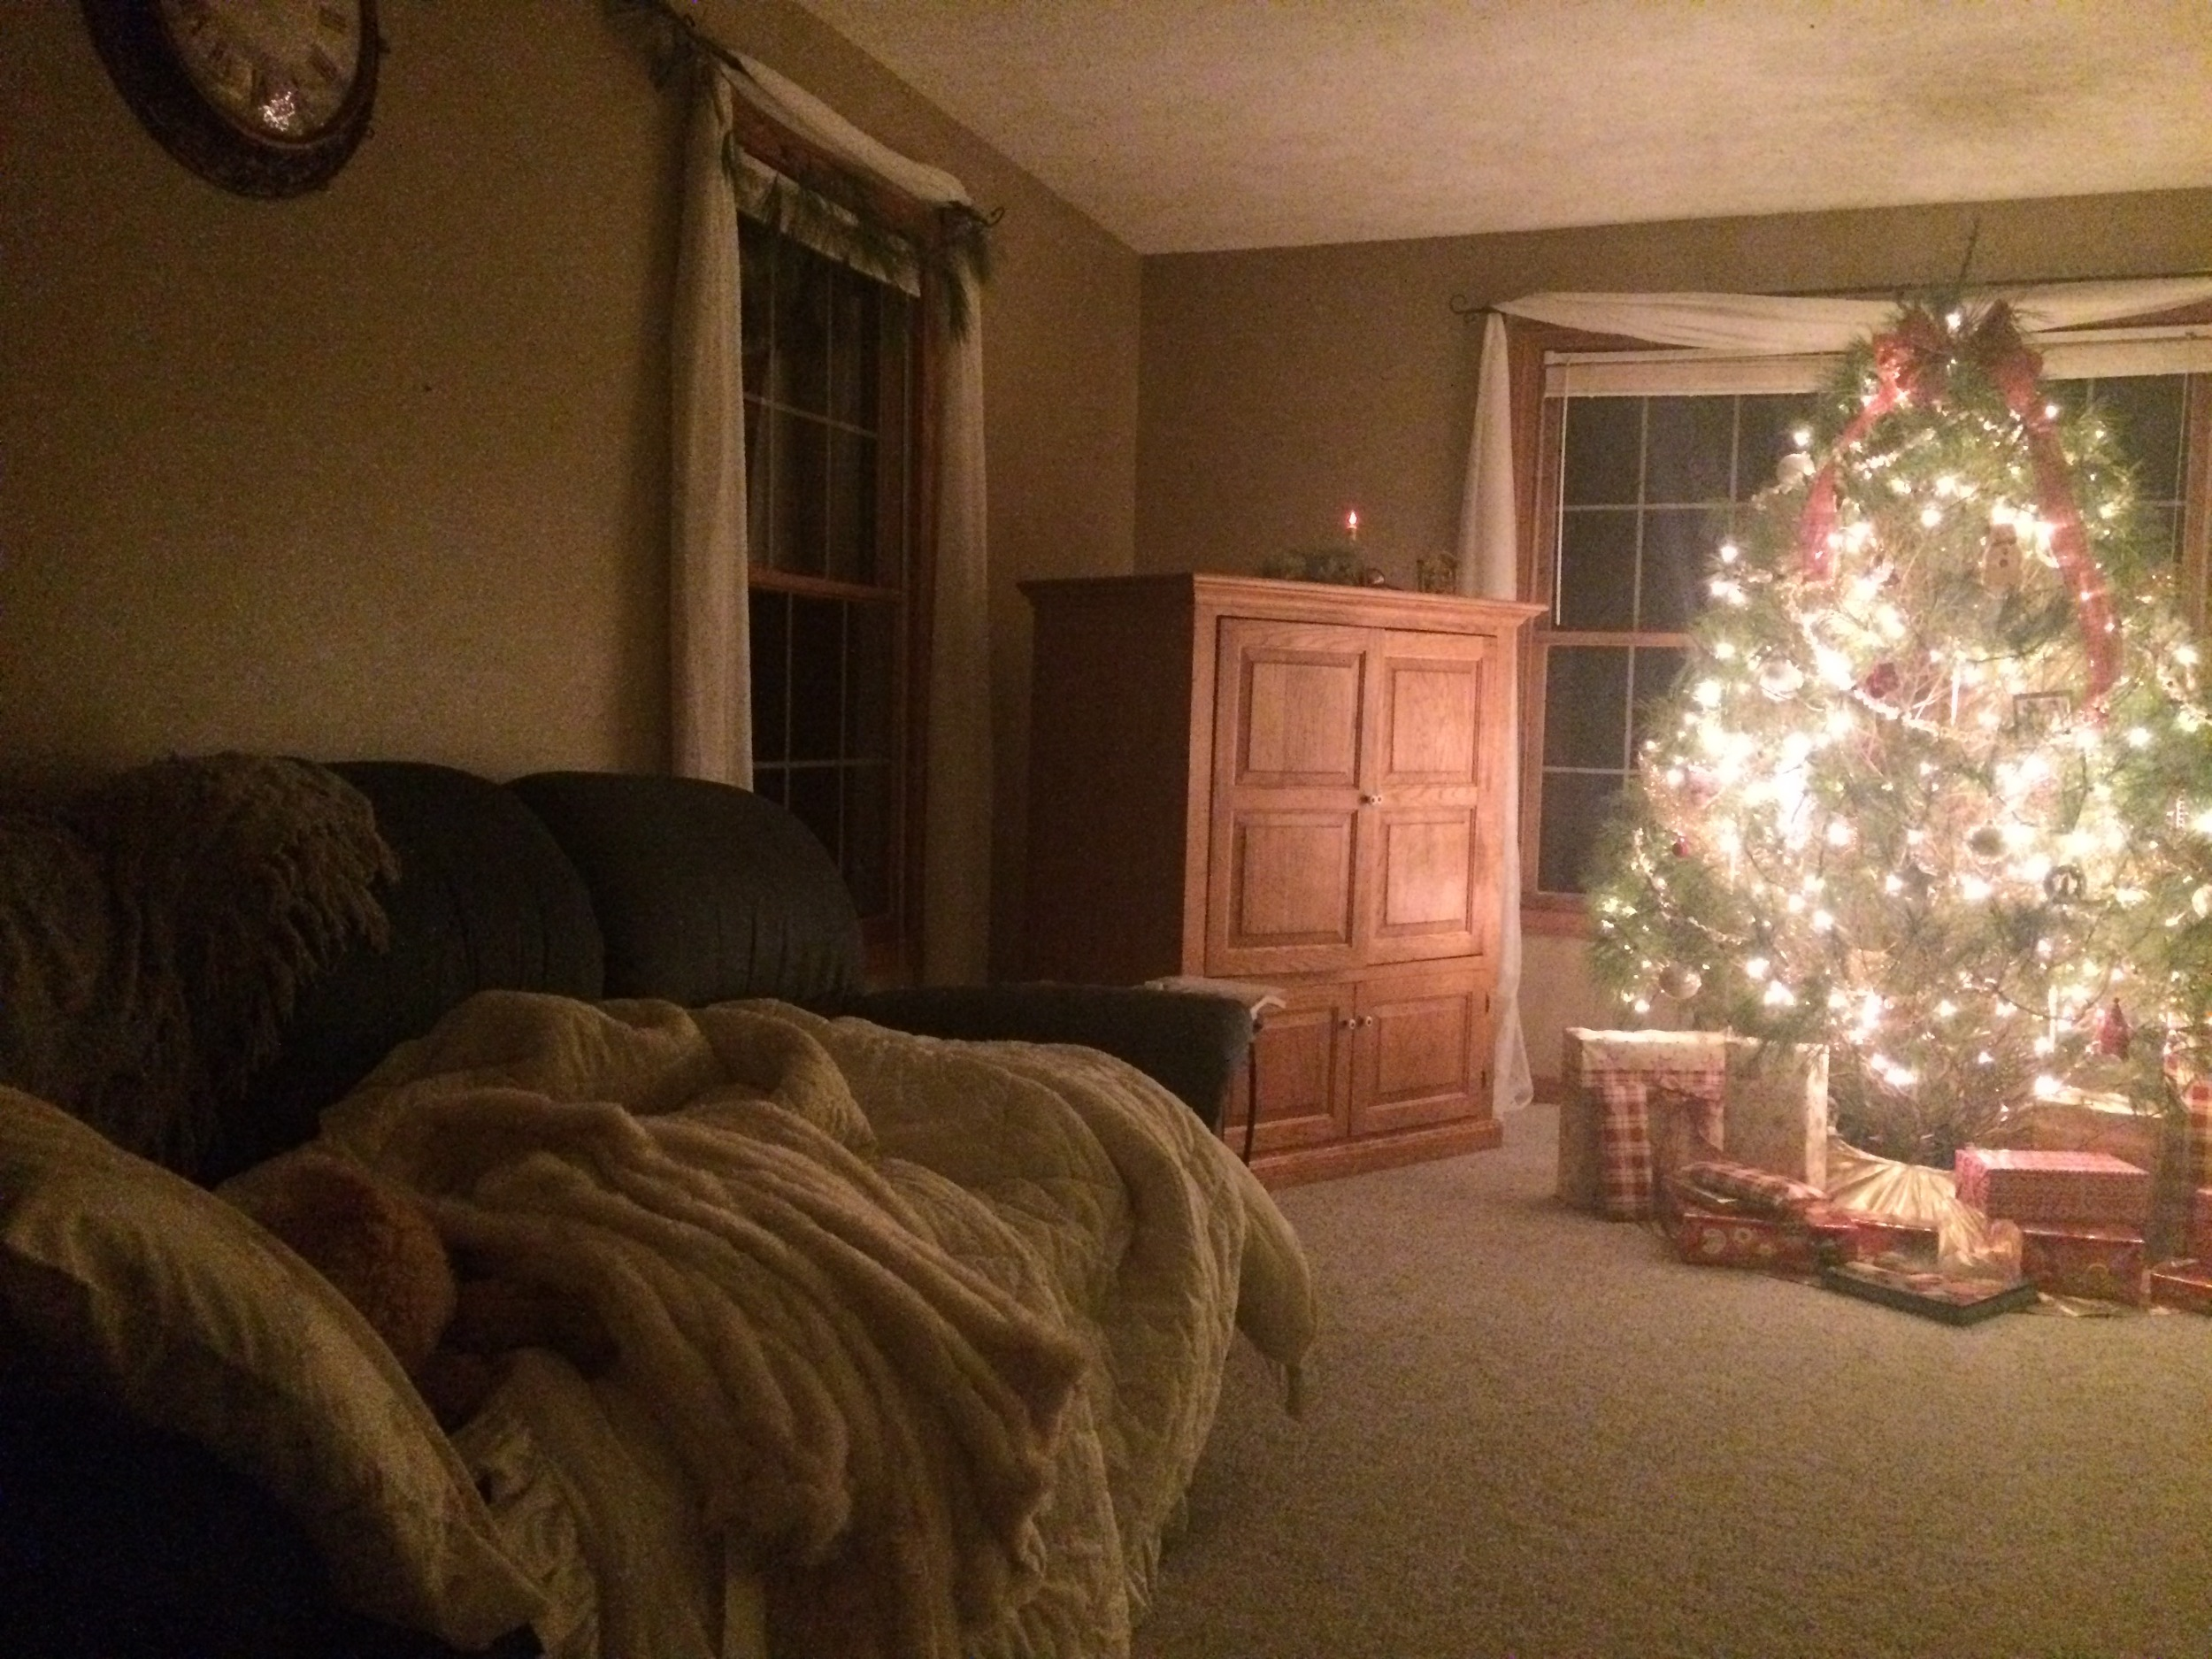 I dragged my comforter and pillow downstairs to sleep under the tree light tonight. Yes, it's magical. :)